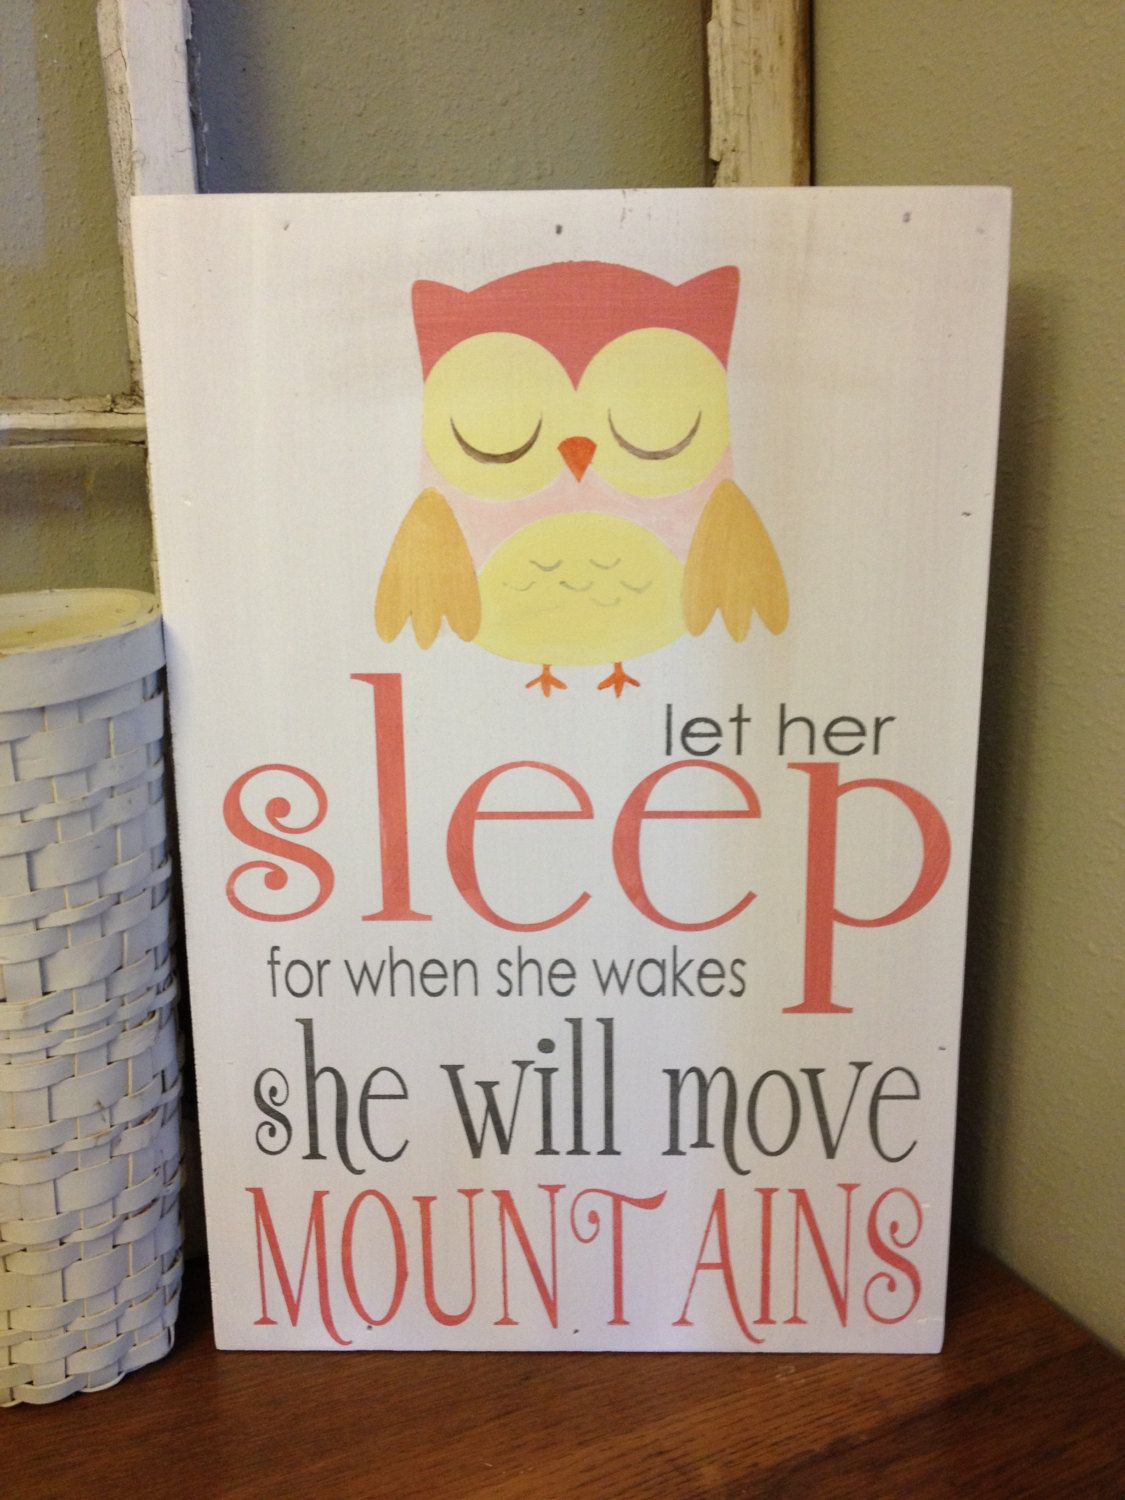 Items similar to Let her sleep - owl - wall art for nursery or little girls room on Etsy & Let her sleep - owl - wall art for nursery or little girls room ...